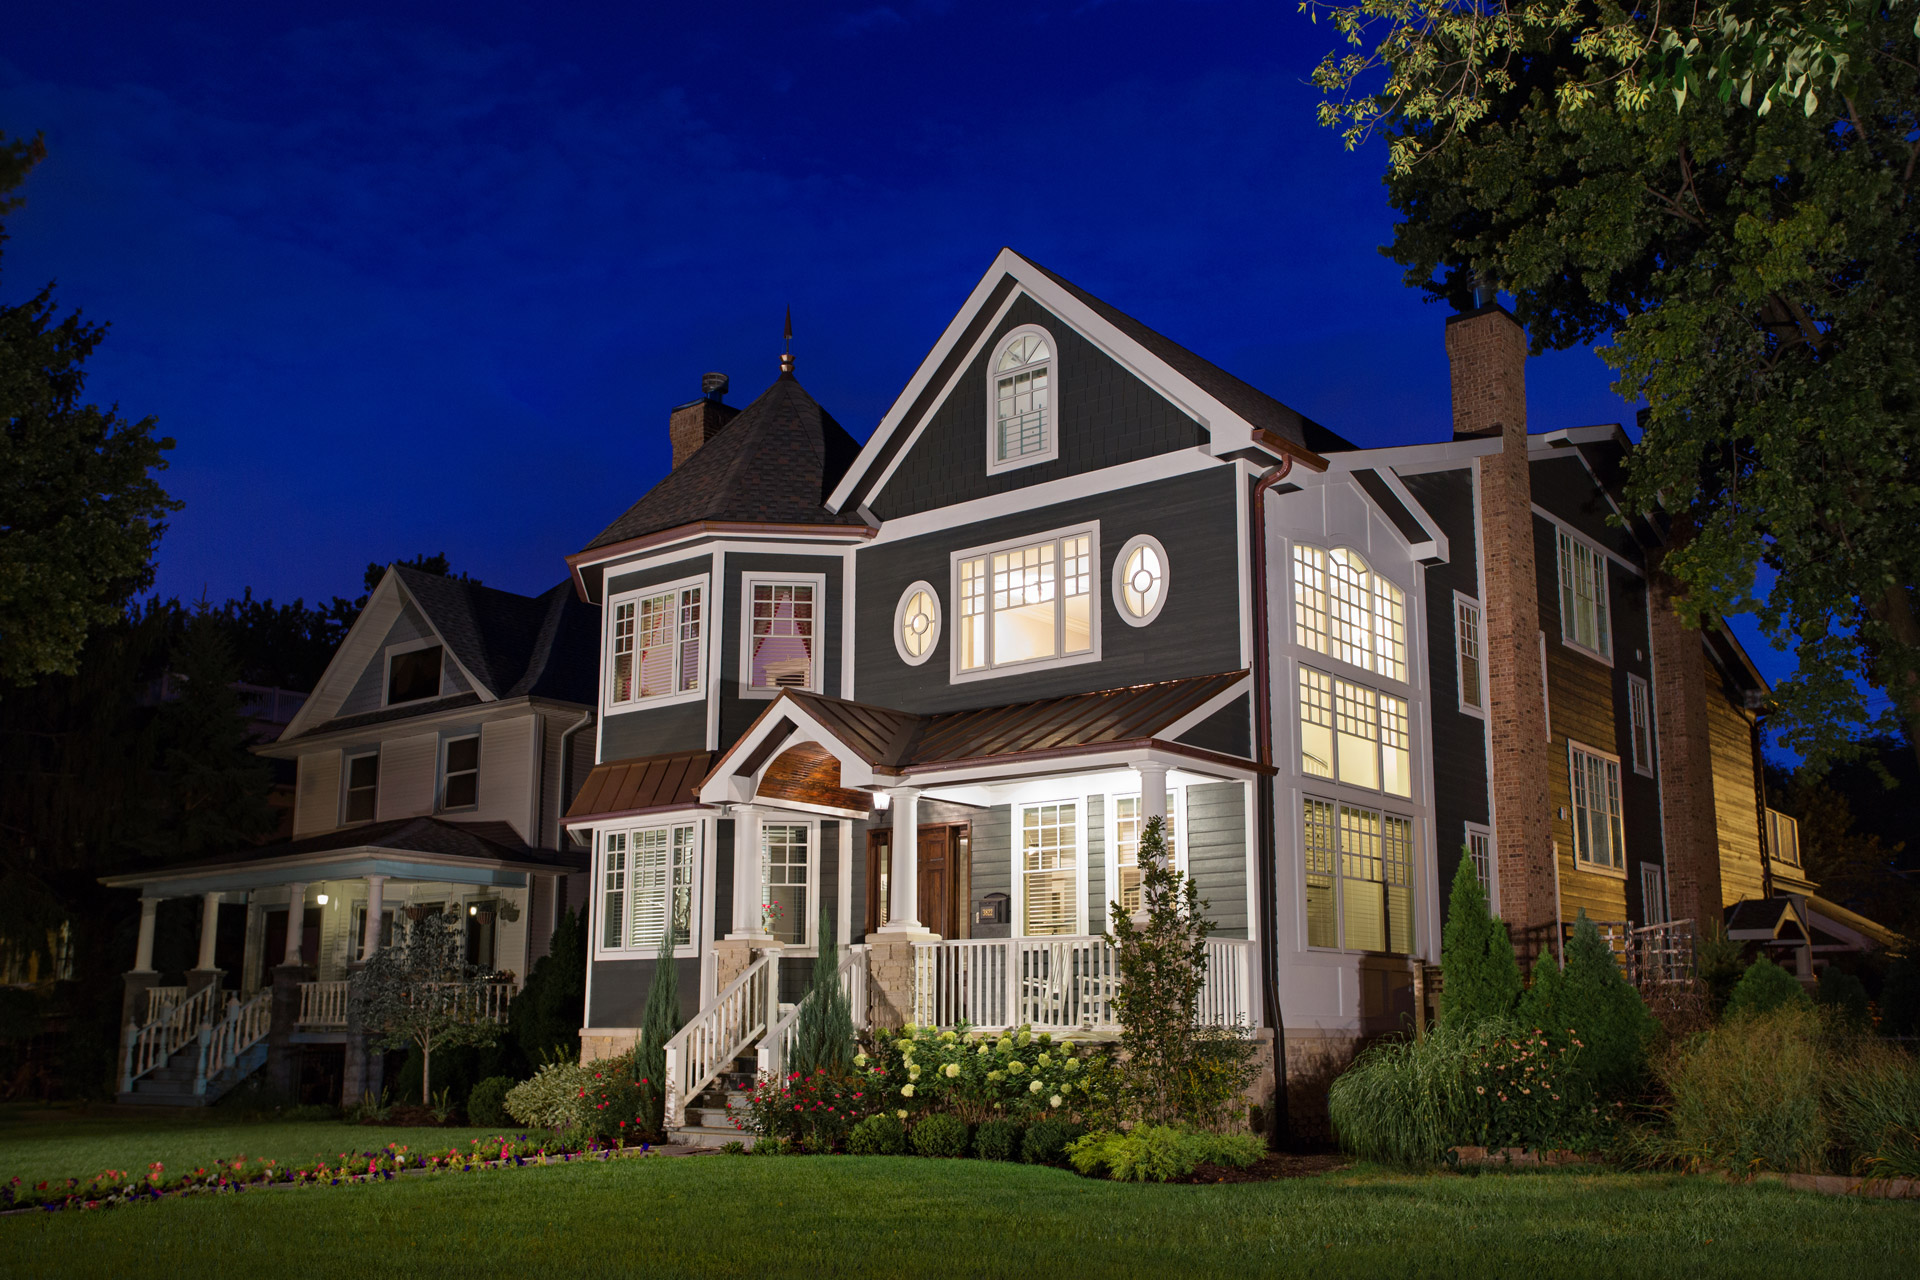 chicago illinois exterior architectural photography luxury custom